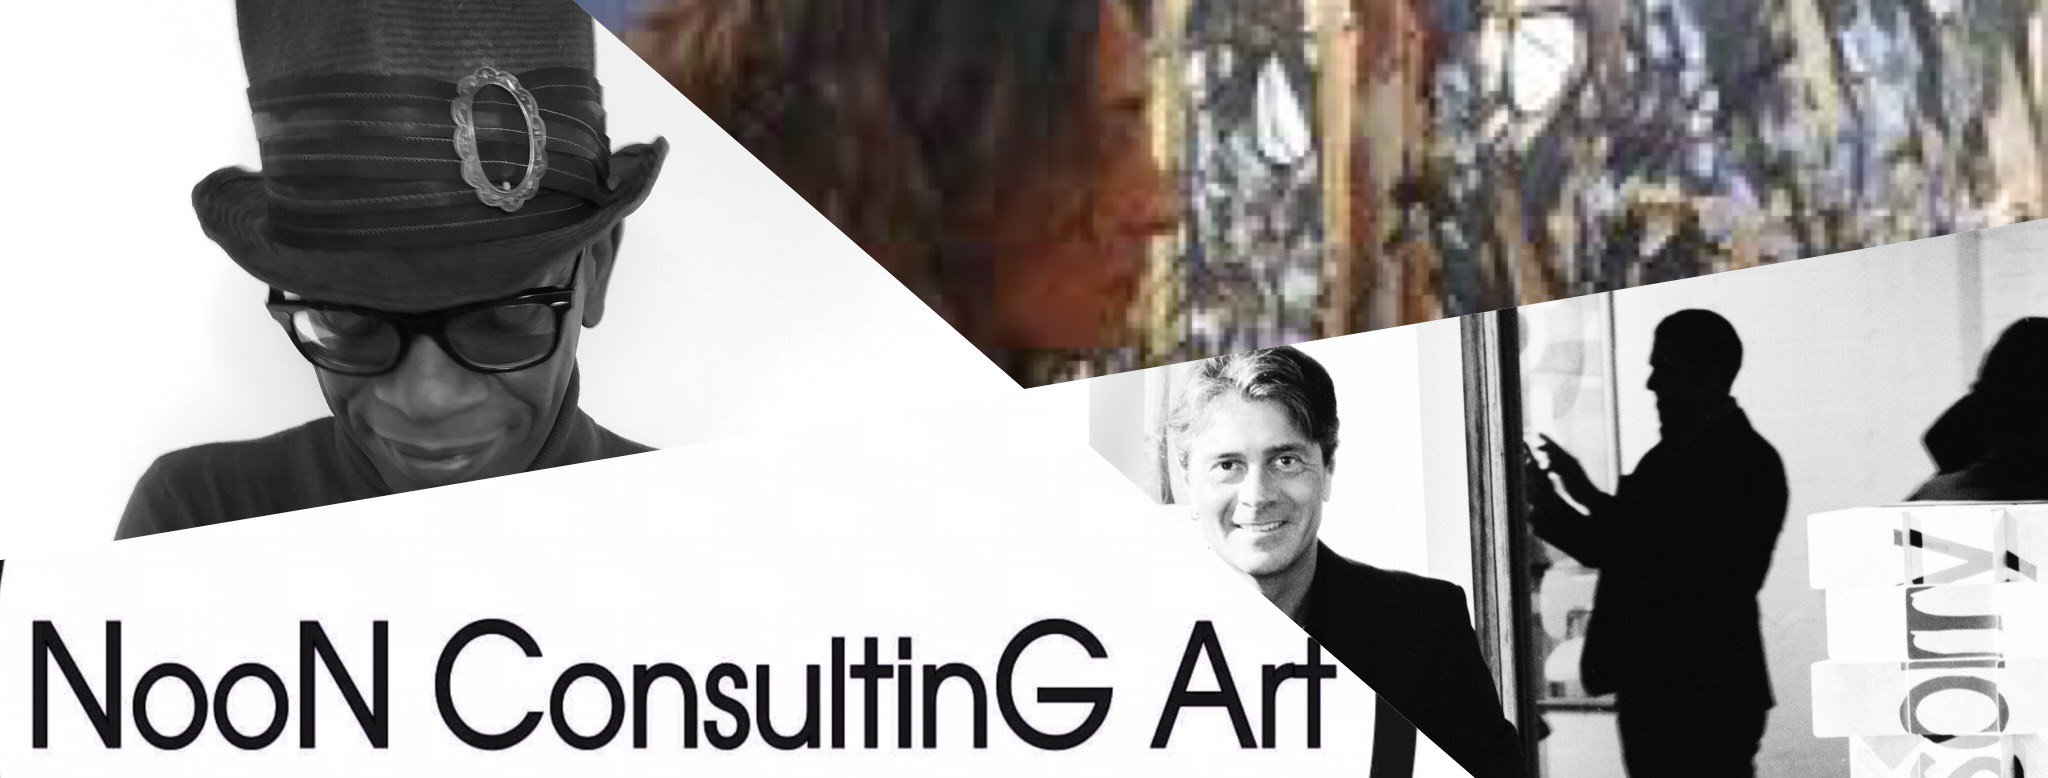 Noon Consulting Art June 2020 Exhibition